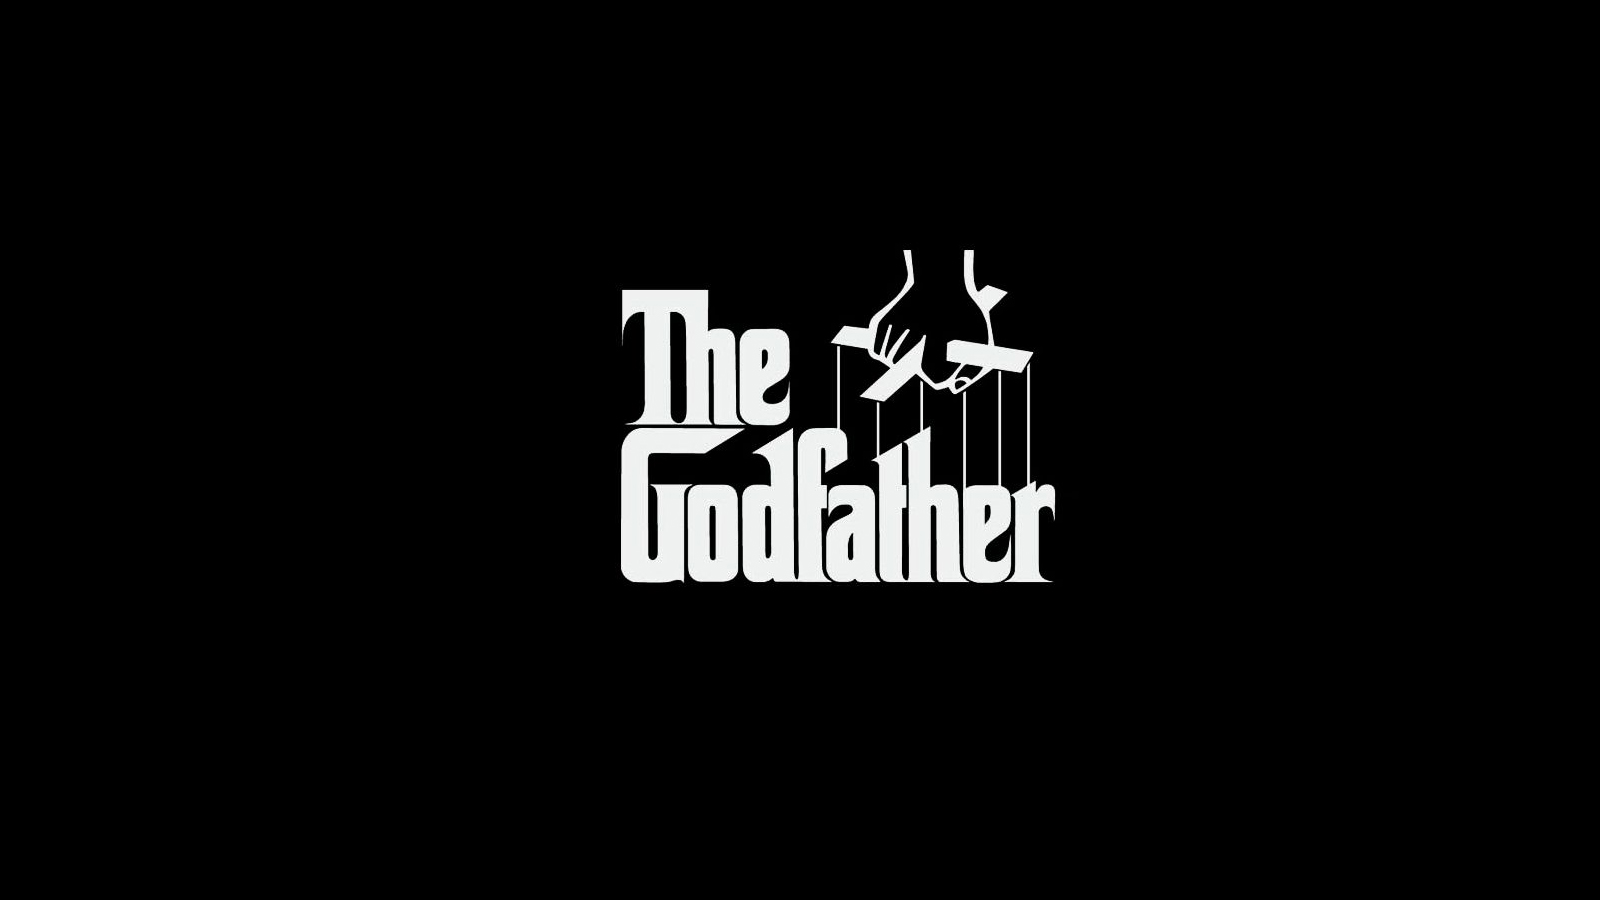 The Godfather Computer Wallpapers, Desktop Backgrounds ...